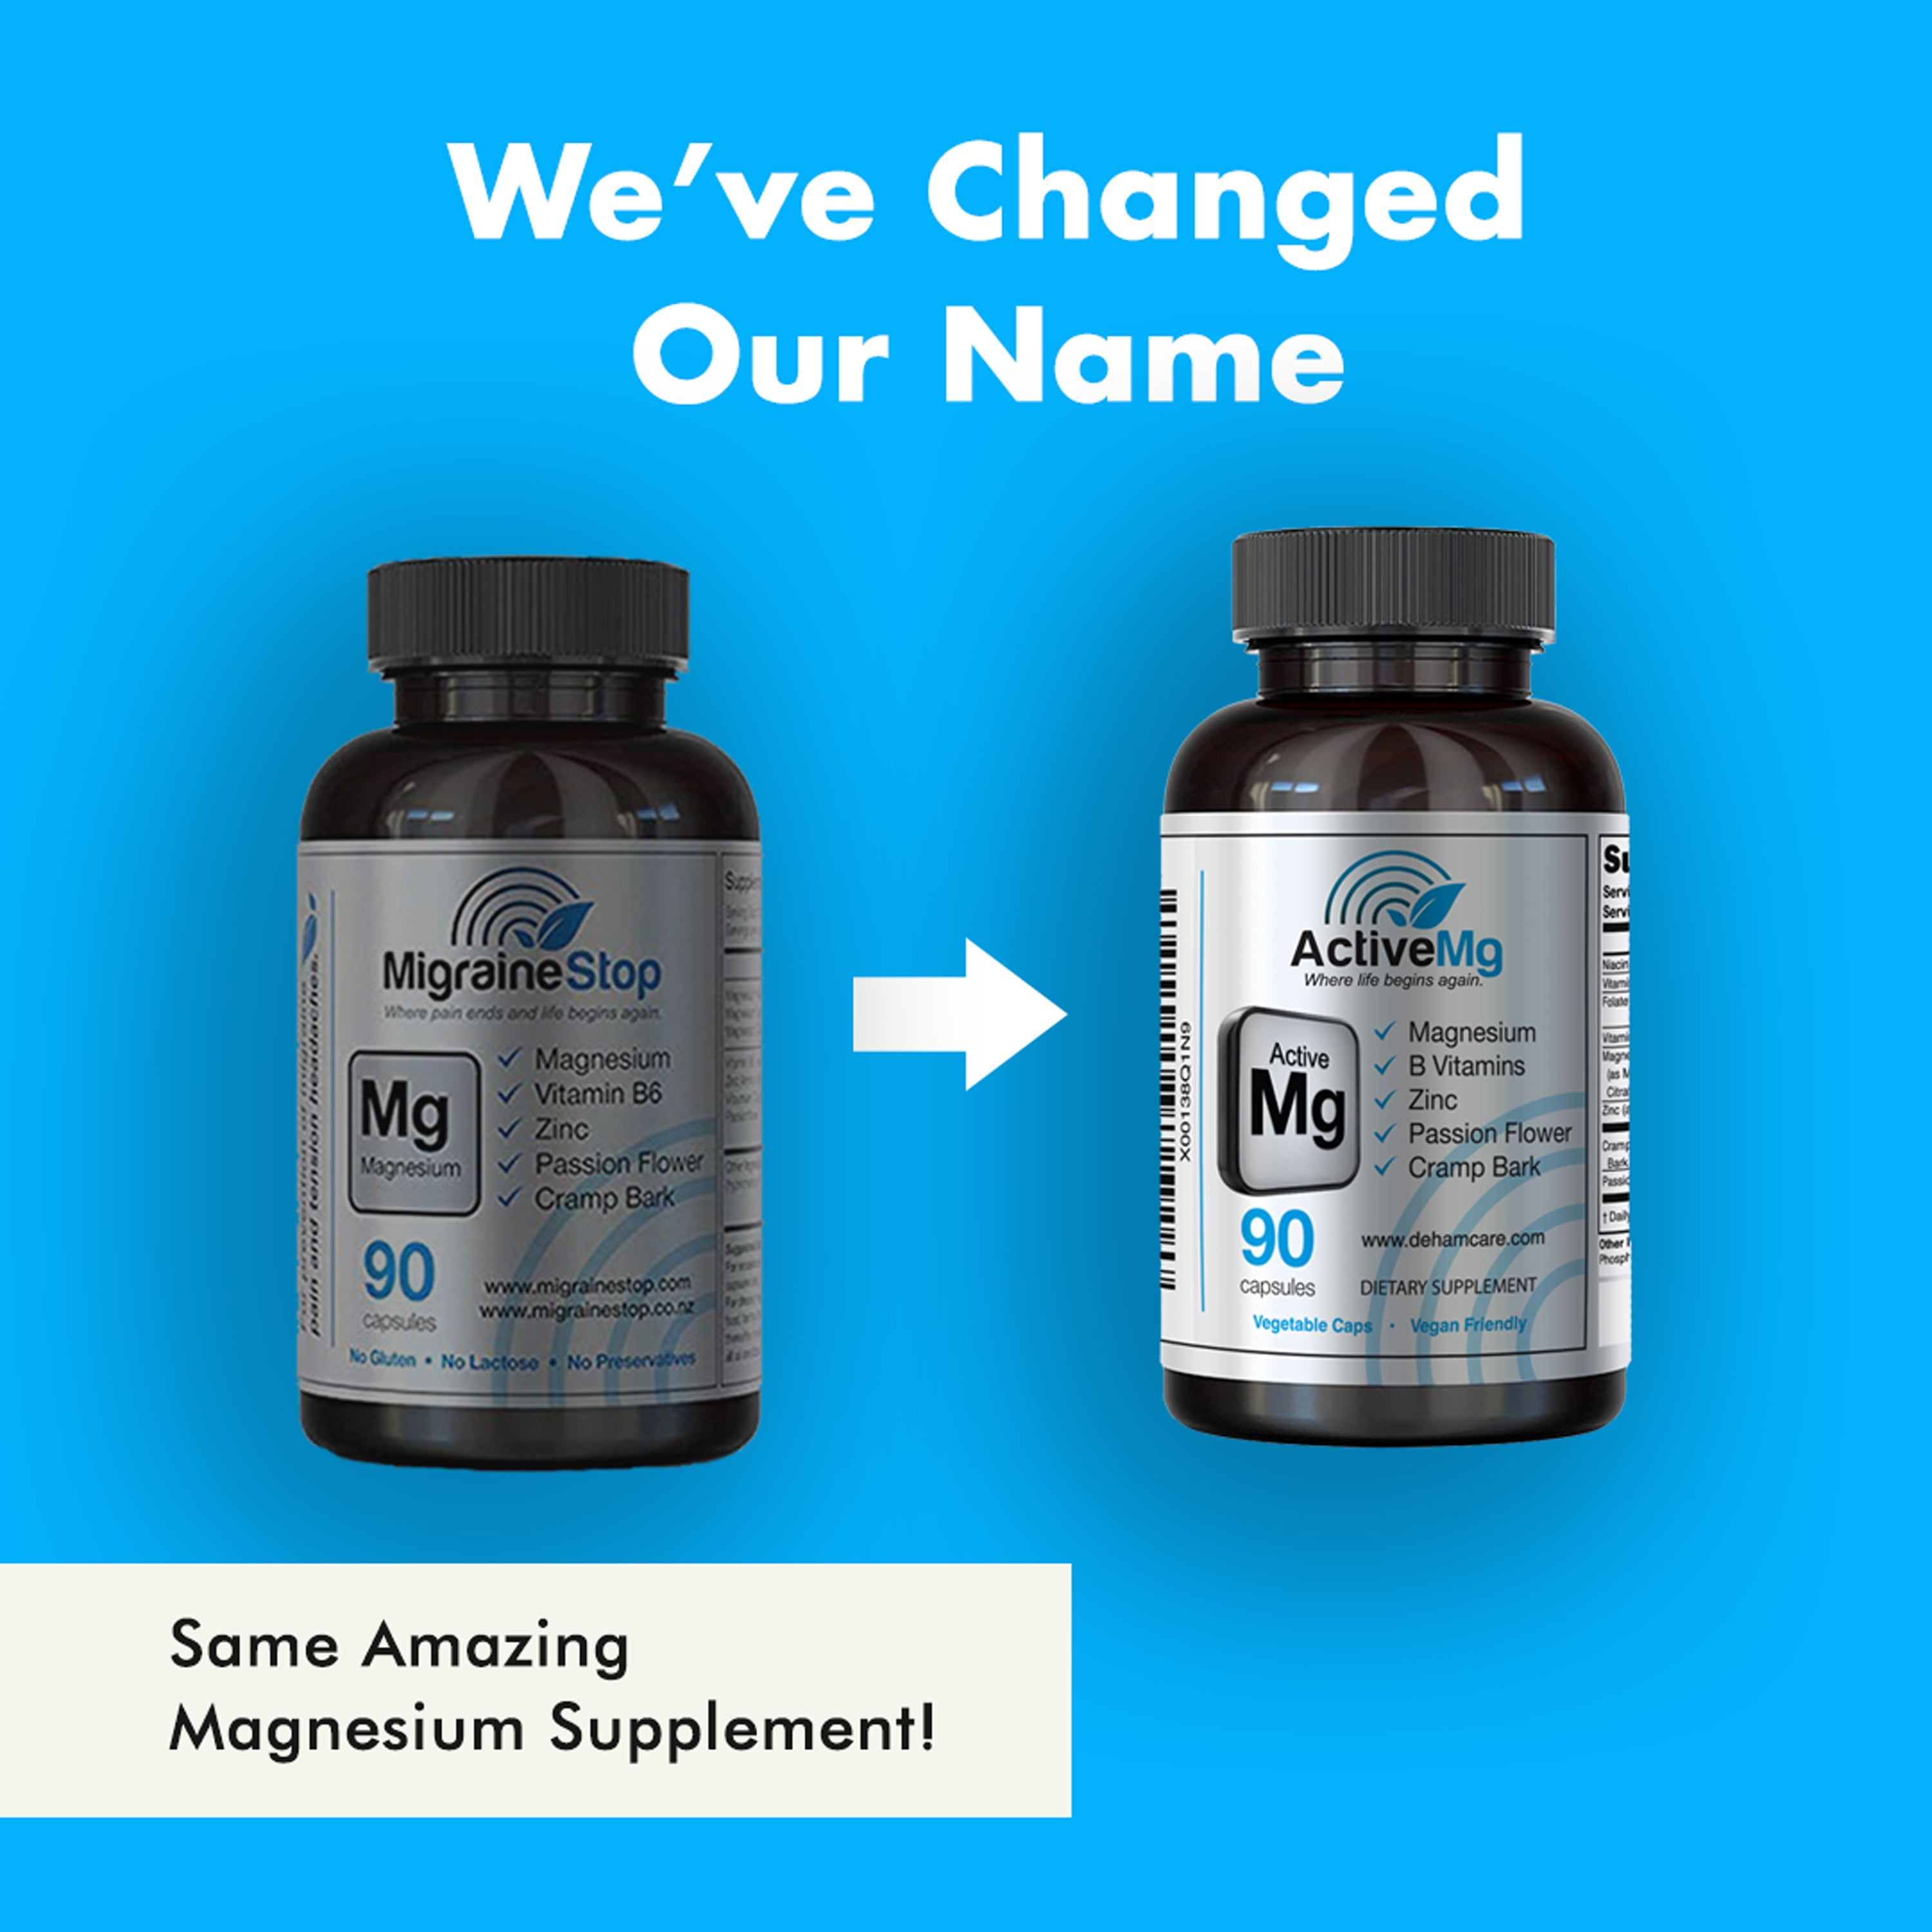 Active Mg - Magnesium Supplement | 6 Pack